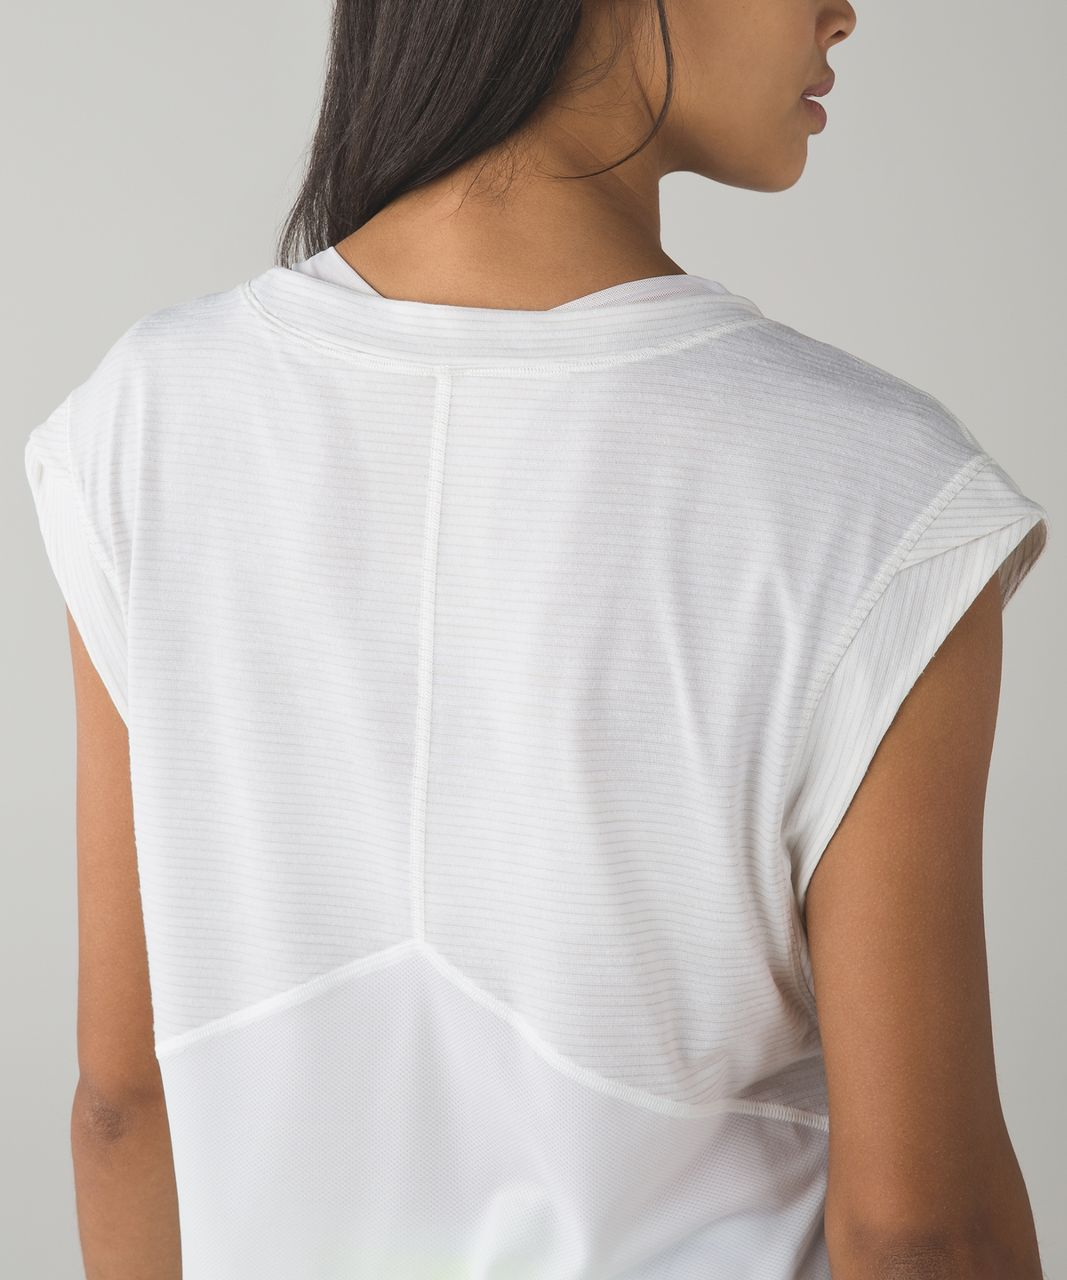 Lululemon Get Sweat Tee - Heathered White / White